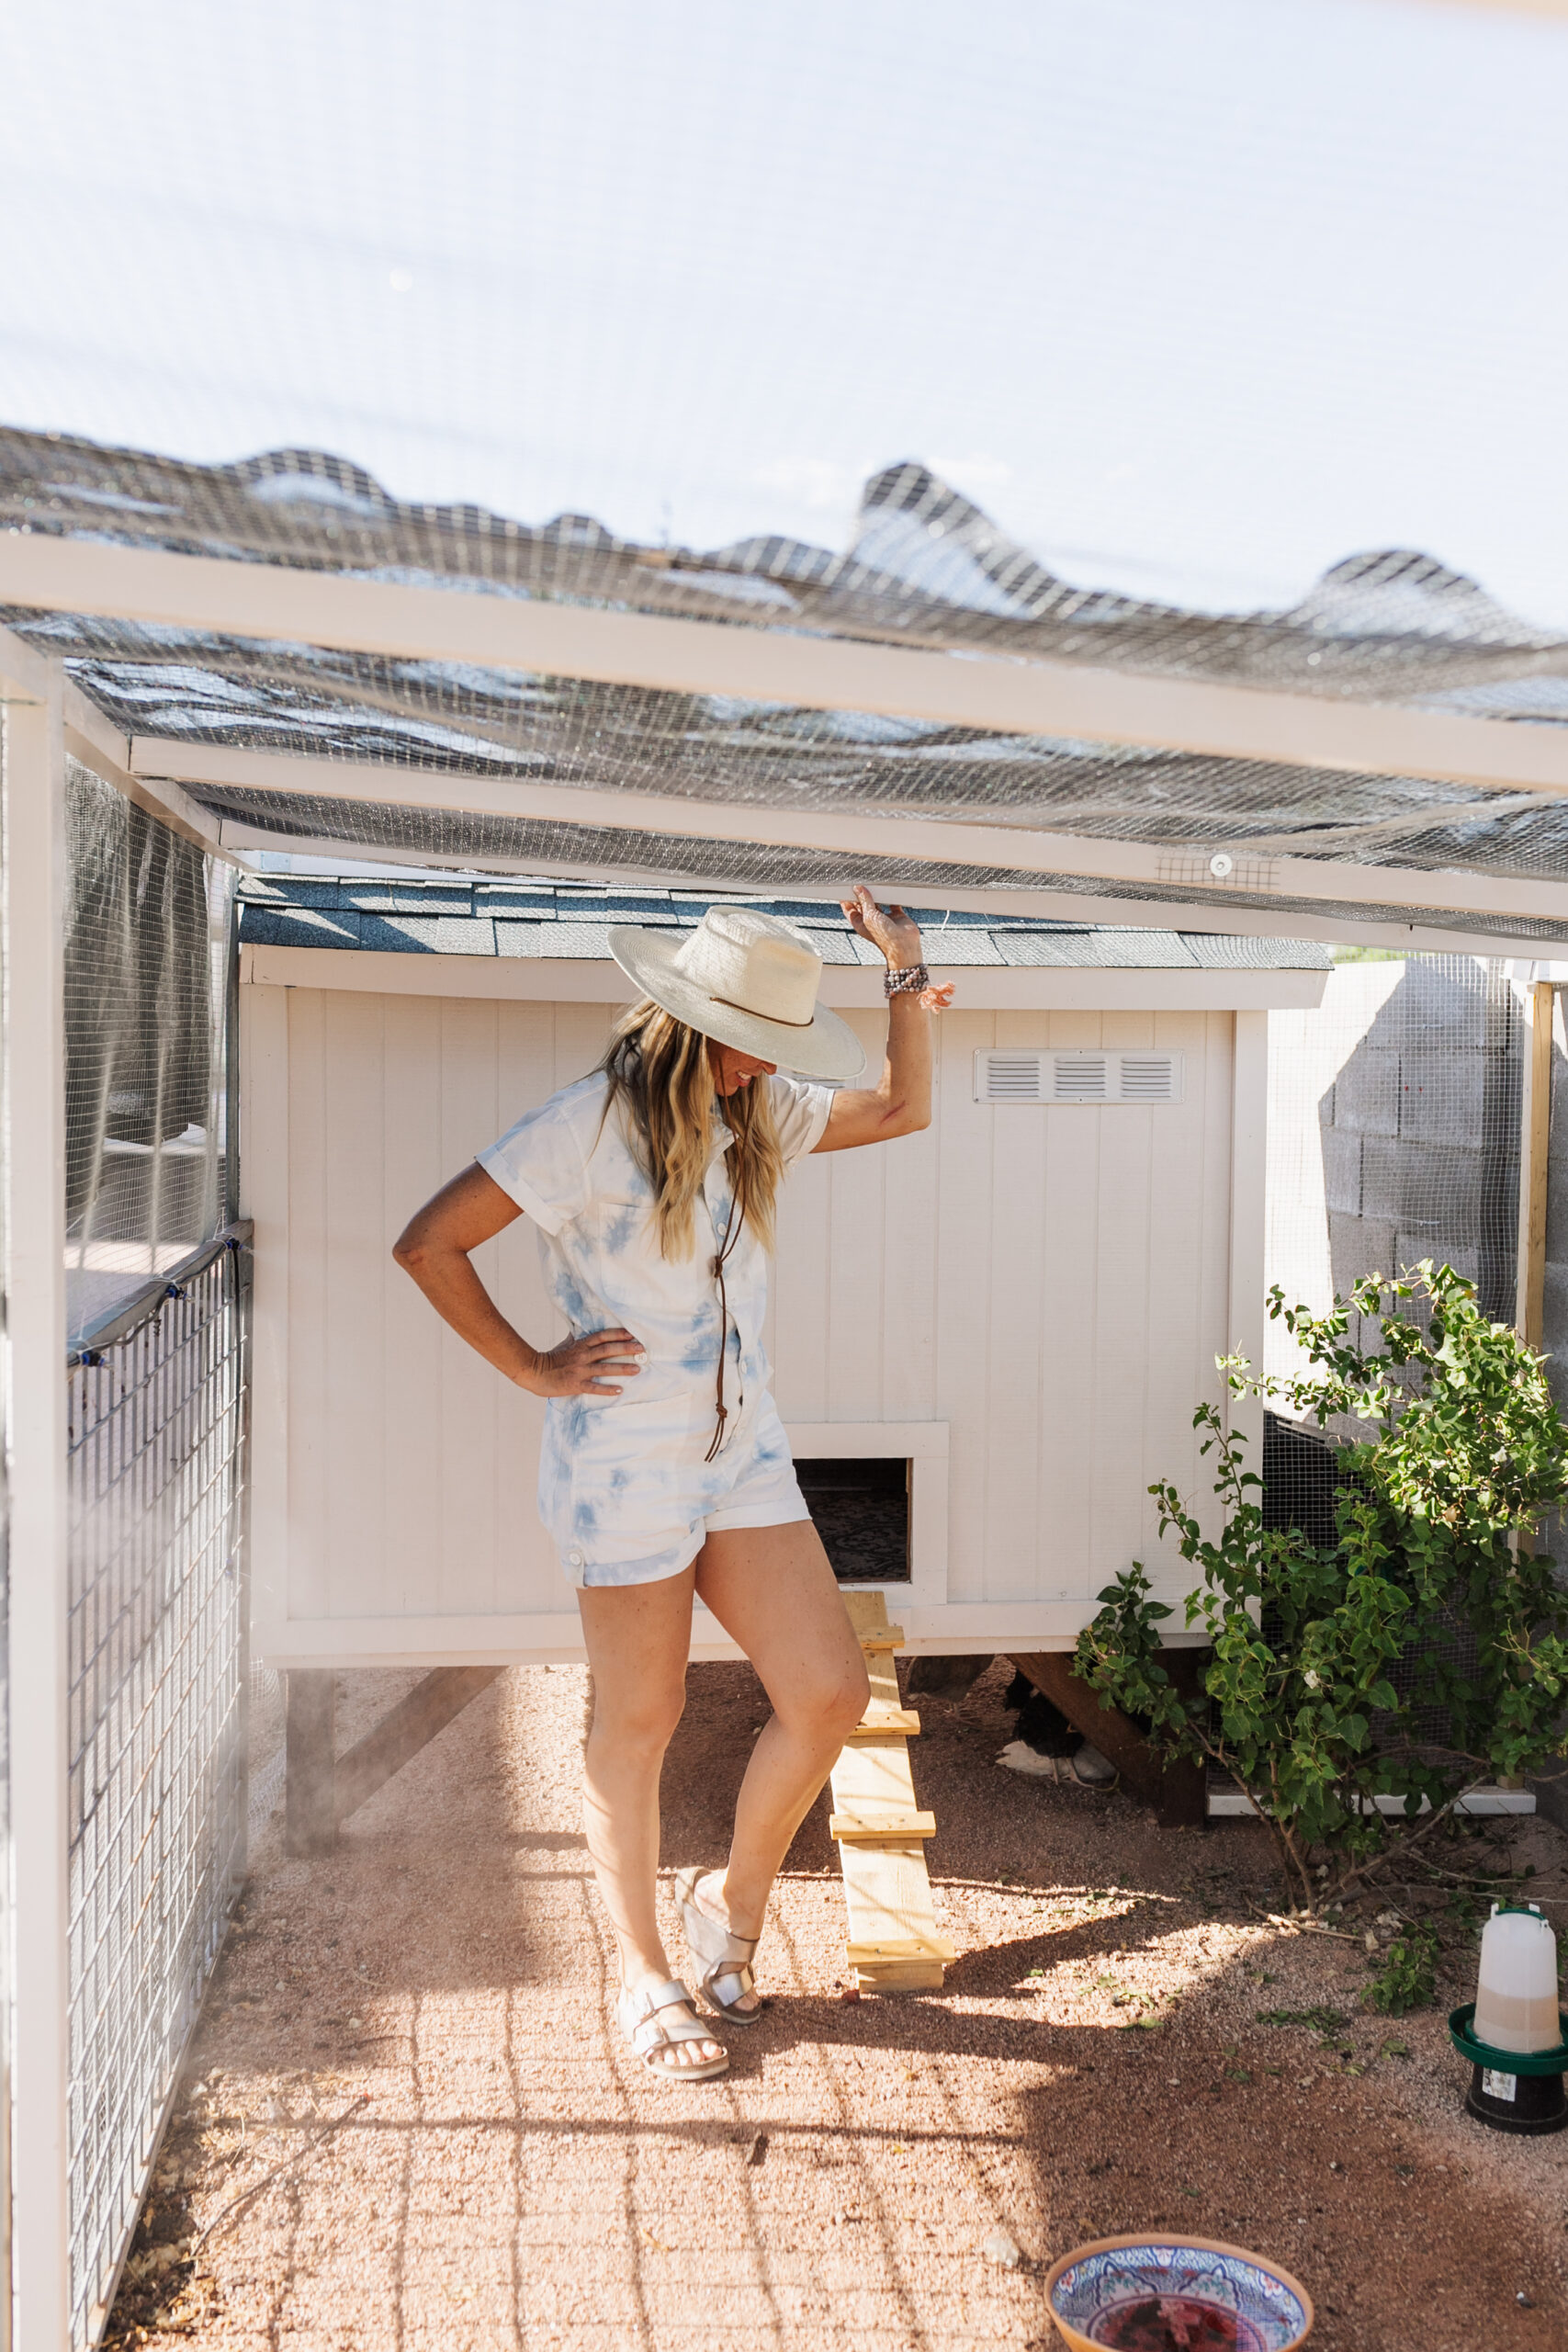 come take a tour of our backyard desert chicken coop and run #thelovedesignedlife #backyard #backyardchickens